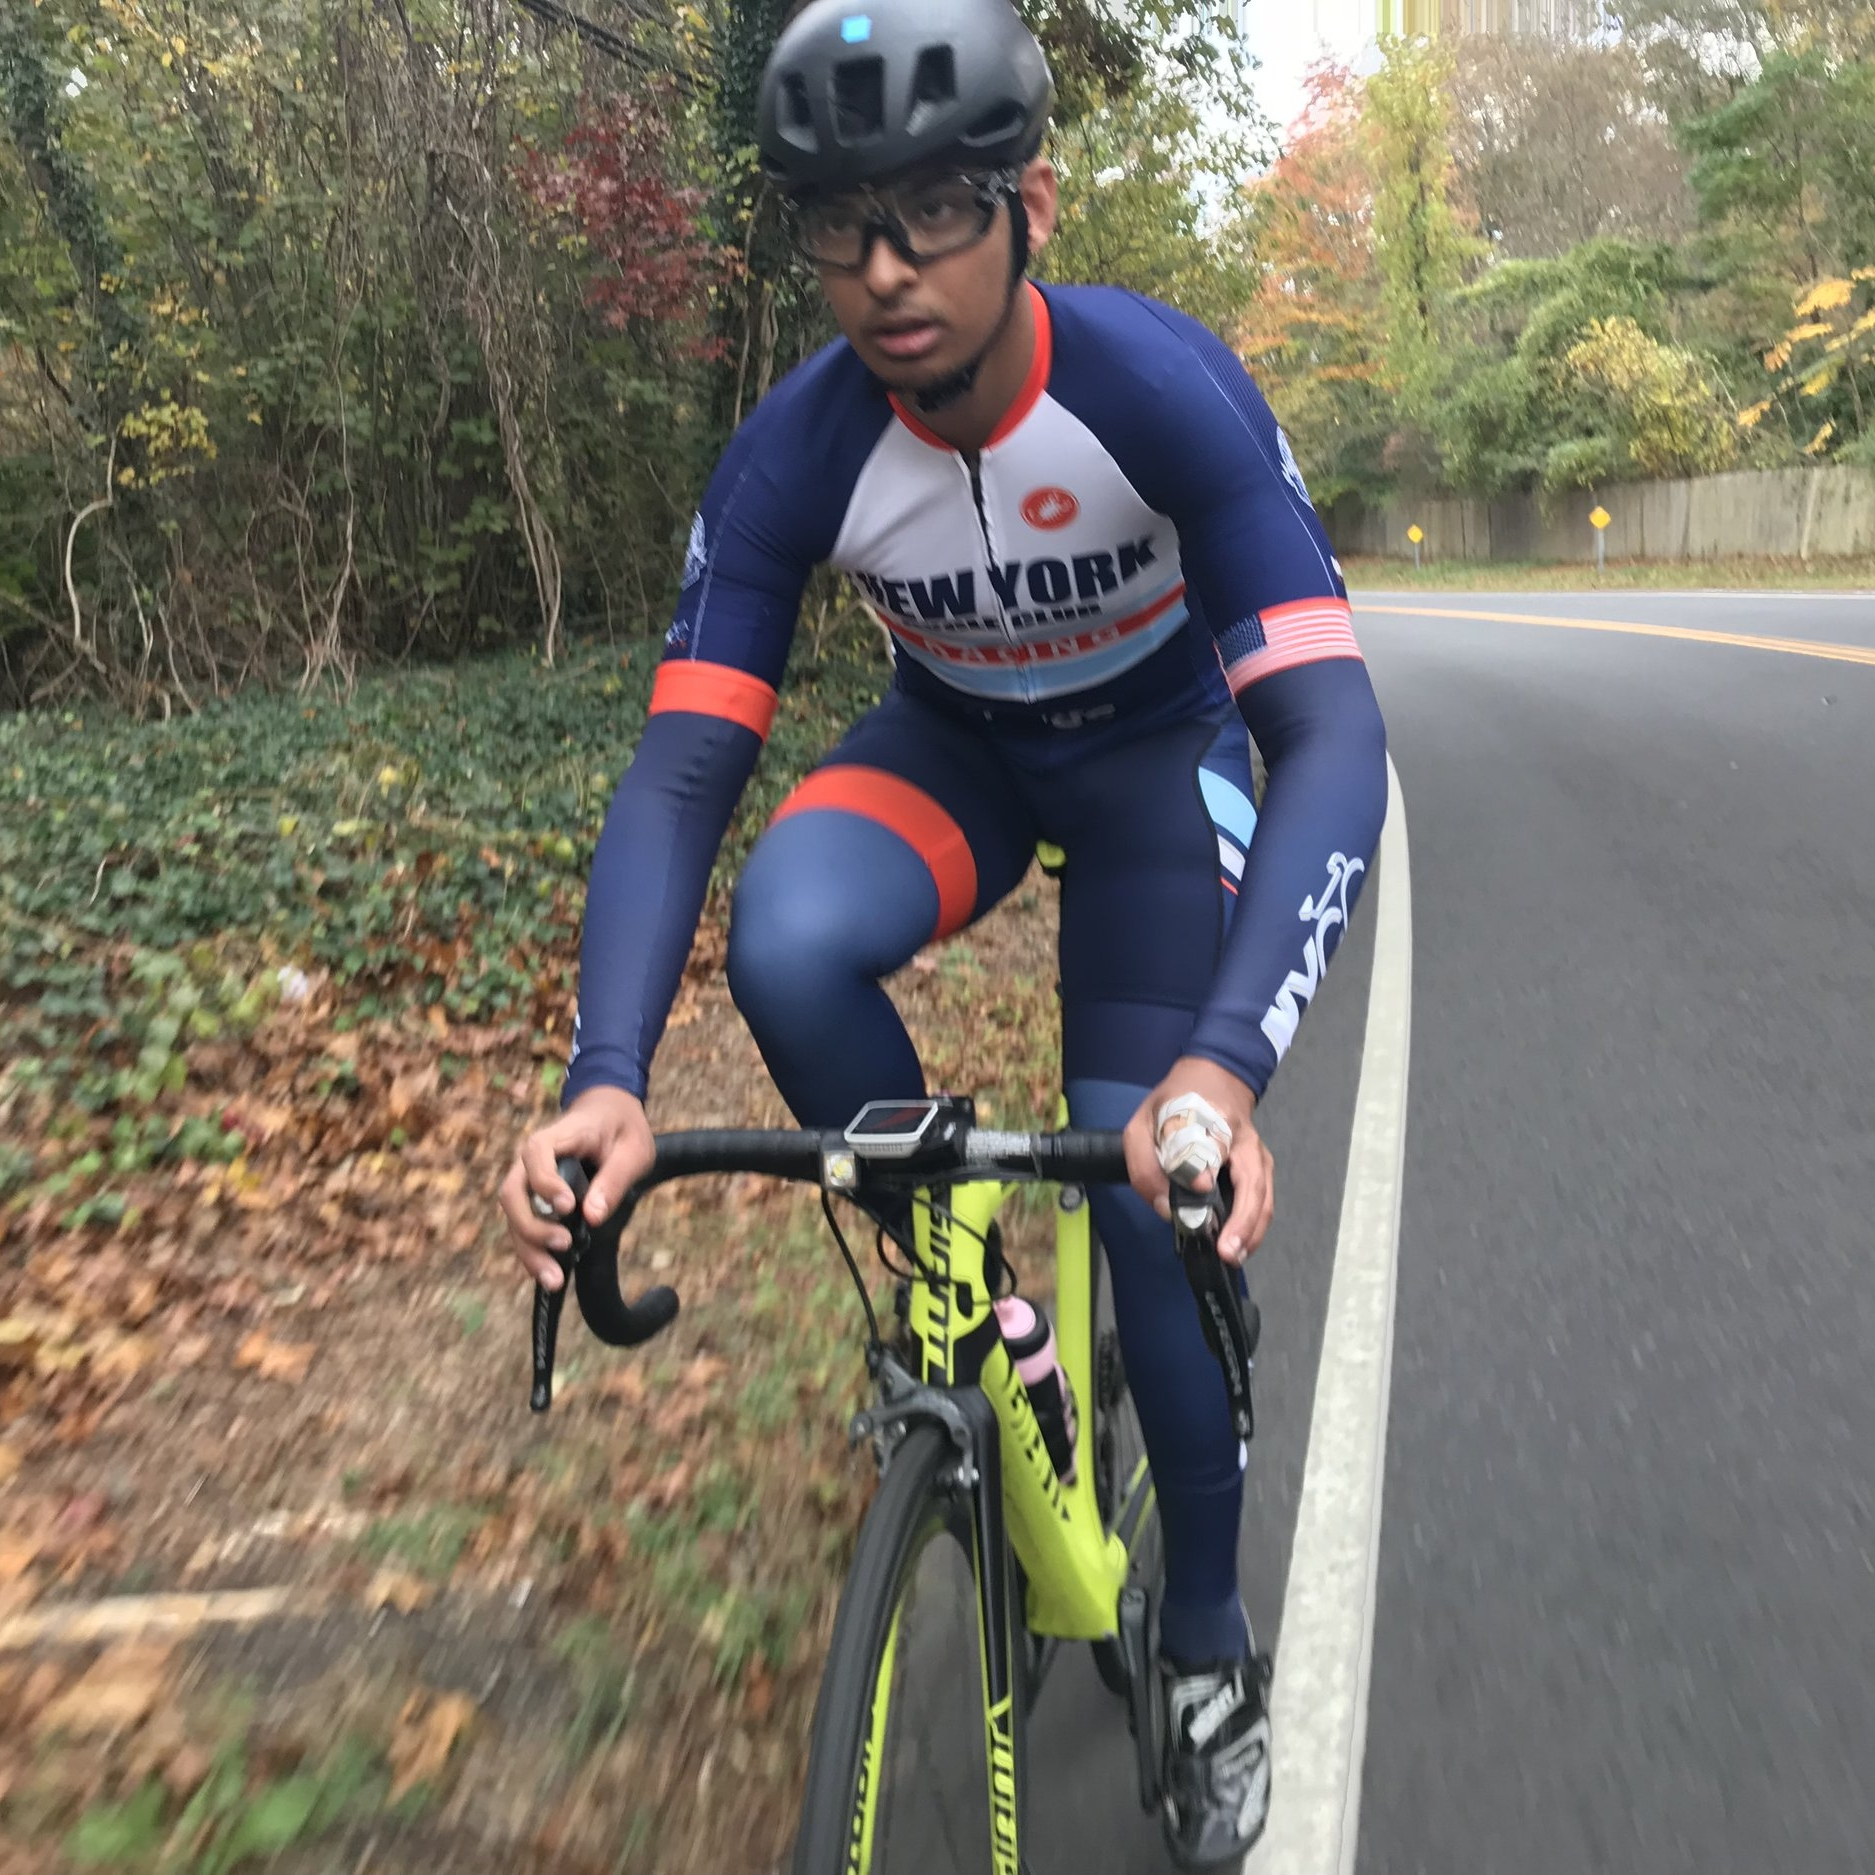 Michel Kazi - Michel, a student at Queens College studying computer science and mathematics, is a new member of the Cat 4 squad for 2018!